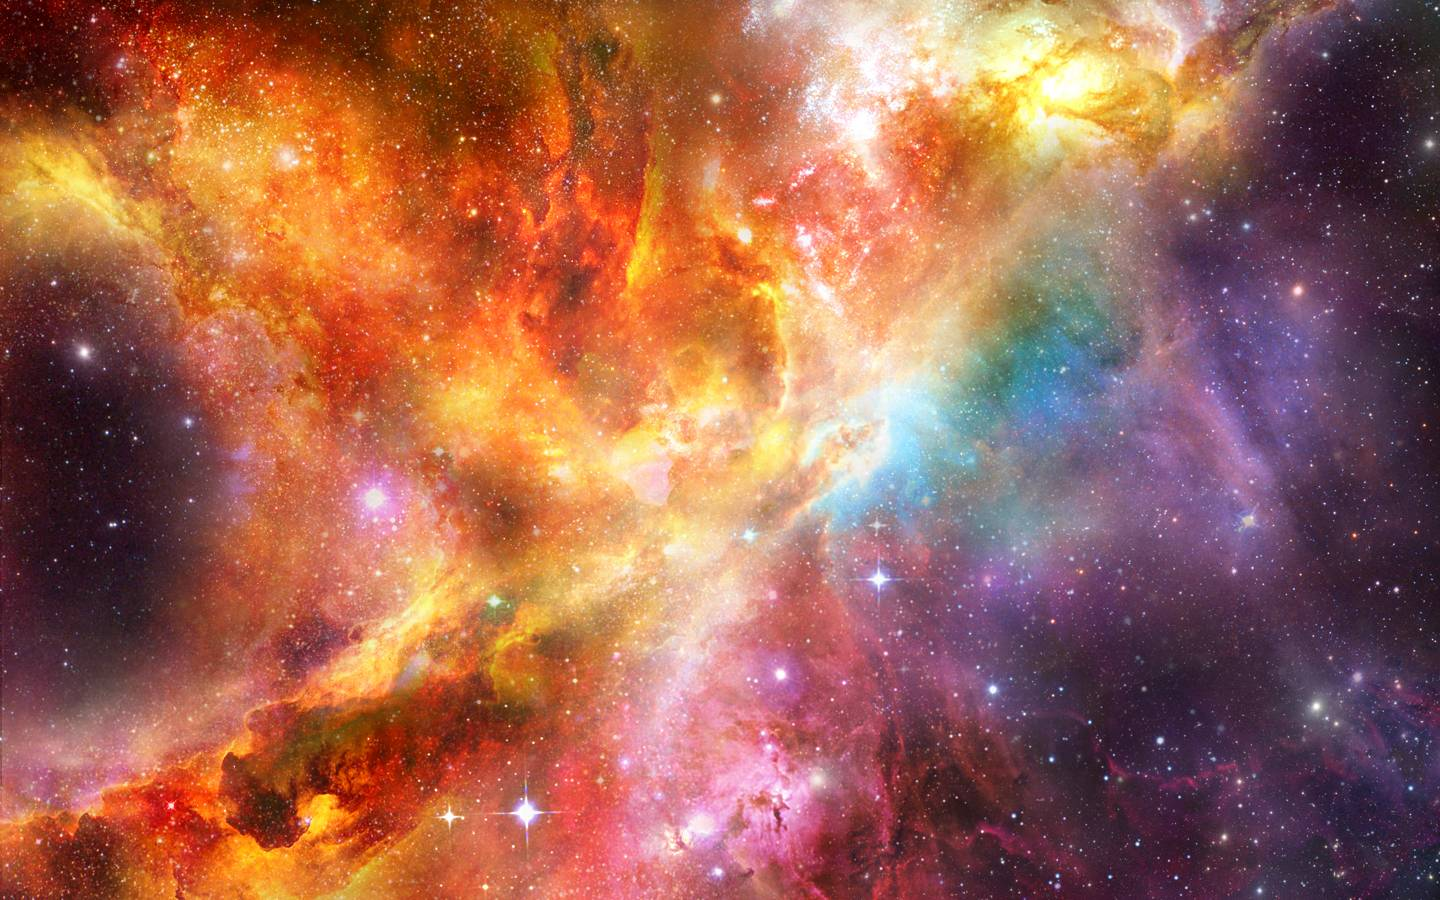 nebula hd wallpaper optical illusions - photo #35